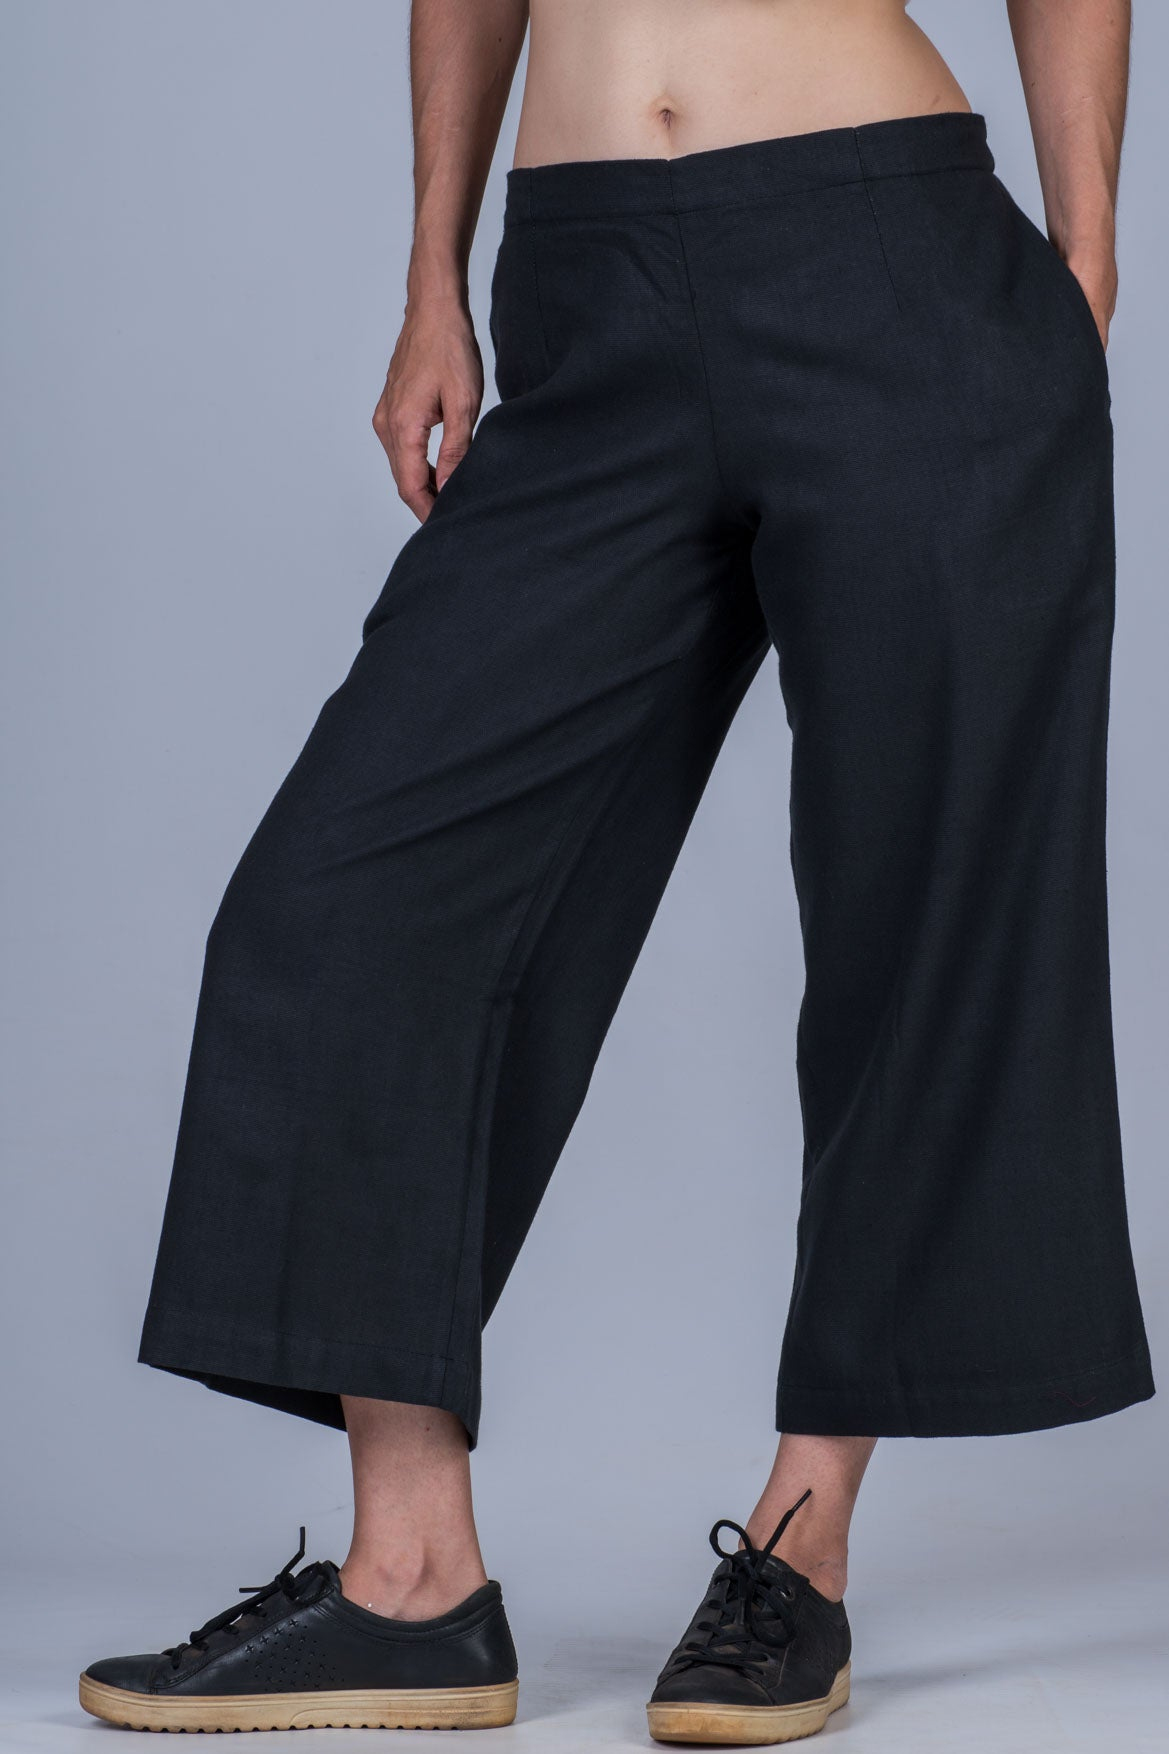 Black Khadi Pants - NILA - Upasana Design Studio